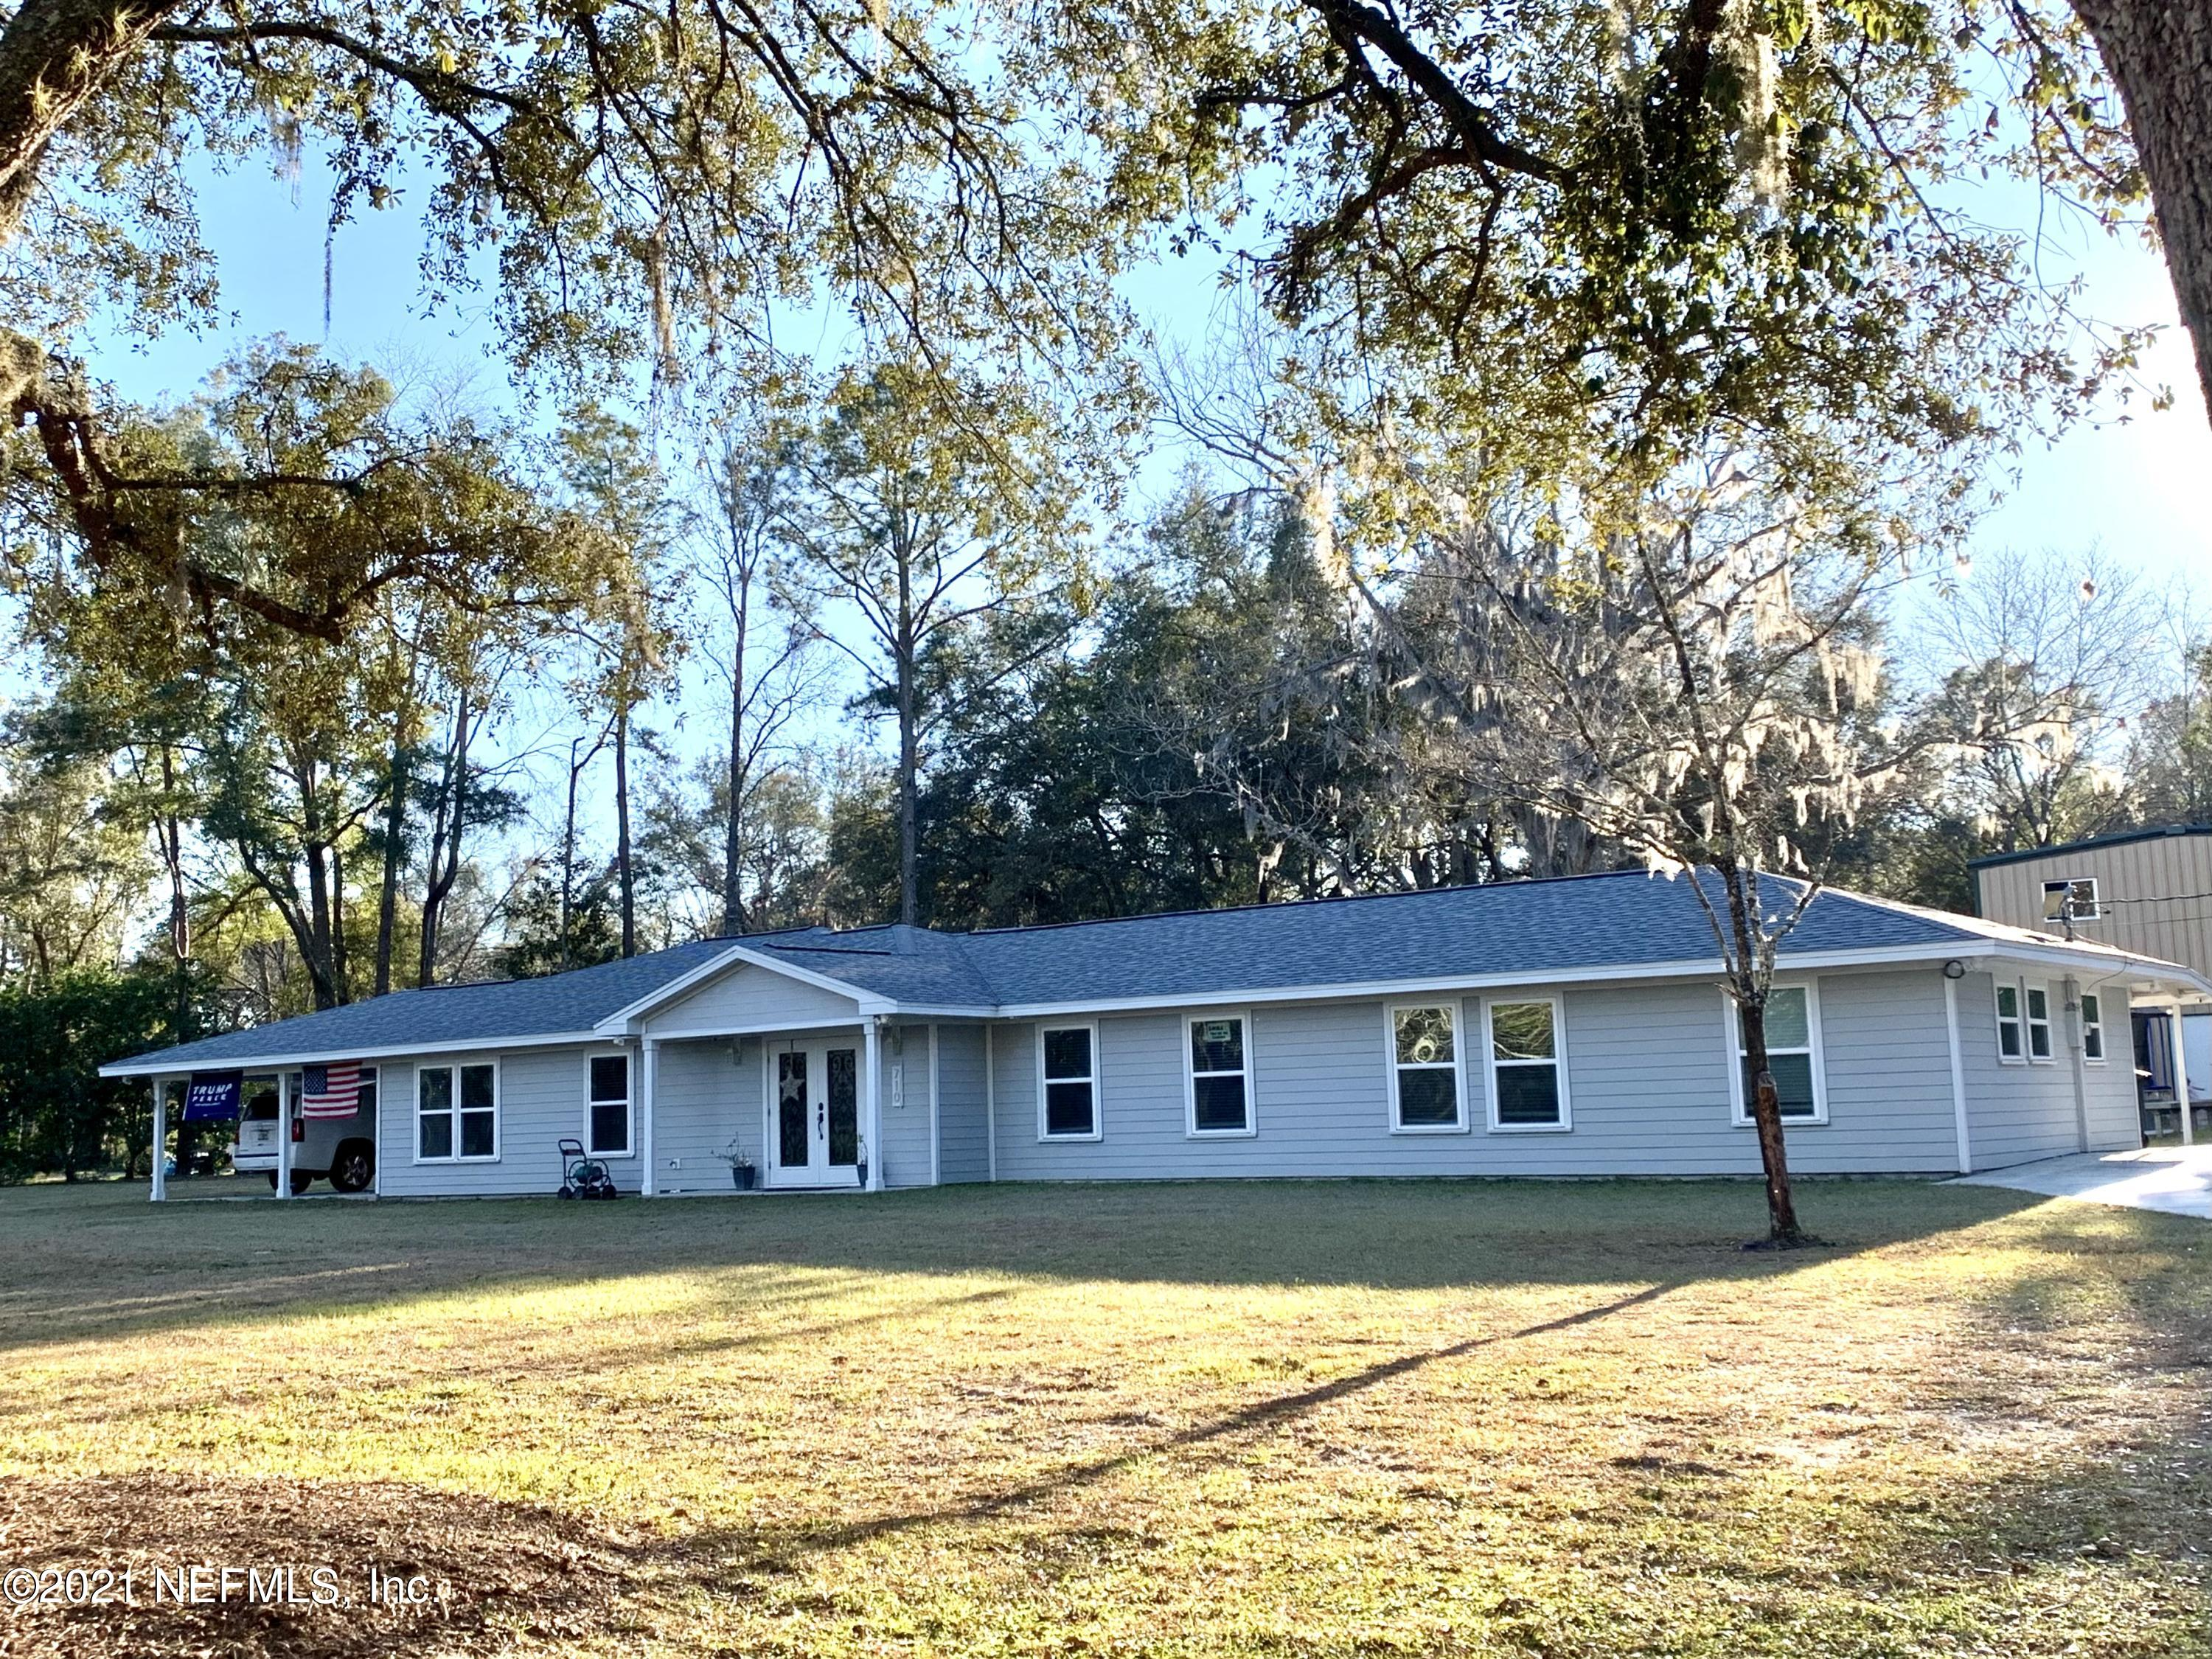 710 ARTHUR MOORE, GREEN COVE SPRINGS, FLORIDA 32043, 4 Bedrooms Bedrooms, ,5 BathroomsBathrooms,Residential,For sale,ARTHUR MOORE,1091074